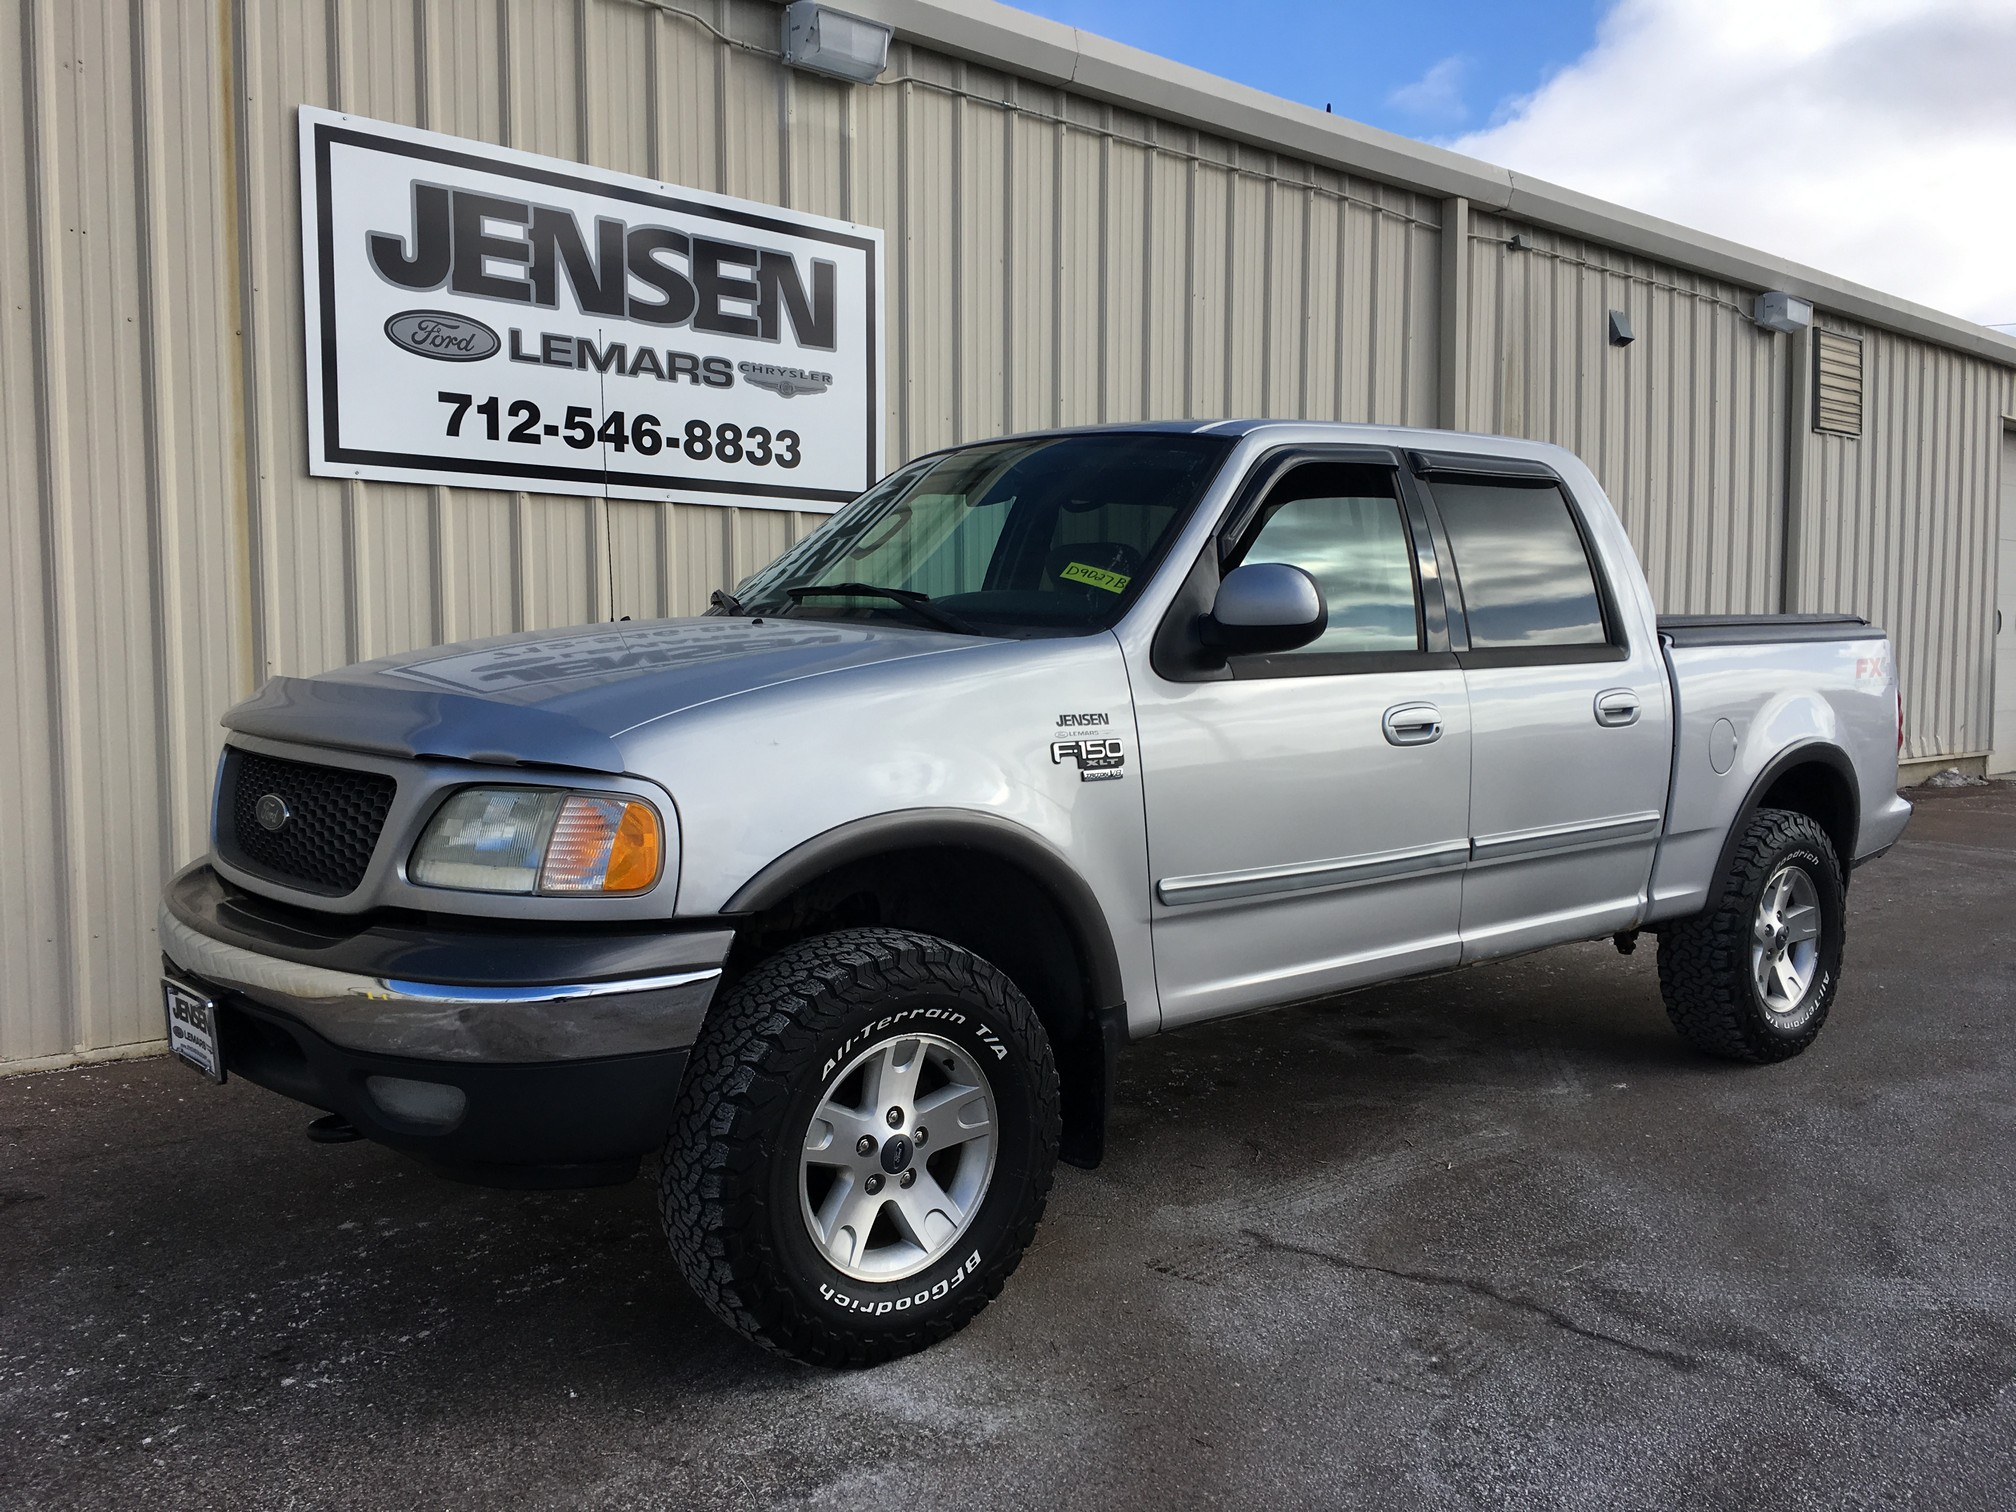 2003 Ford F-150 SuperCrew XLT Truck